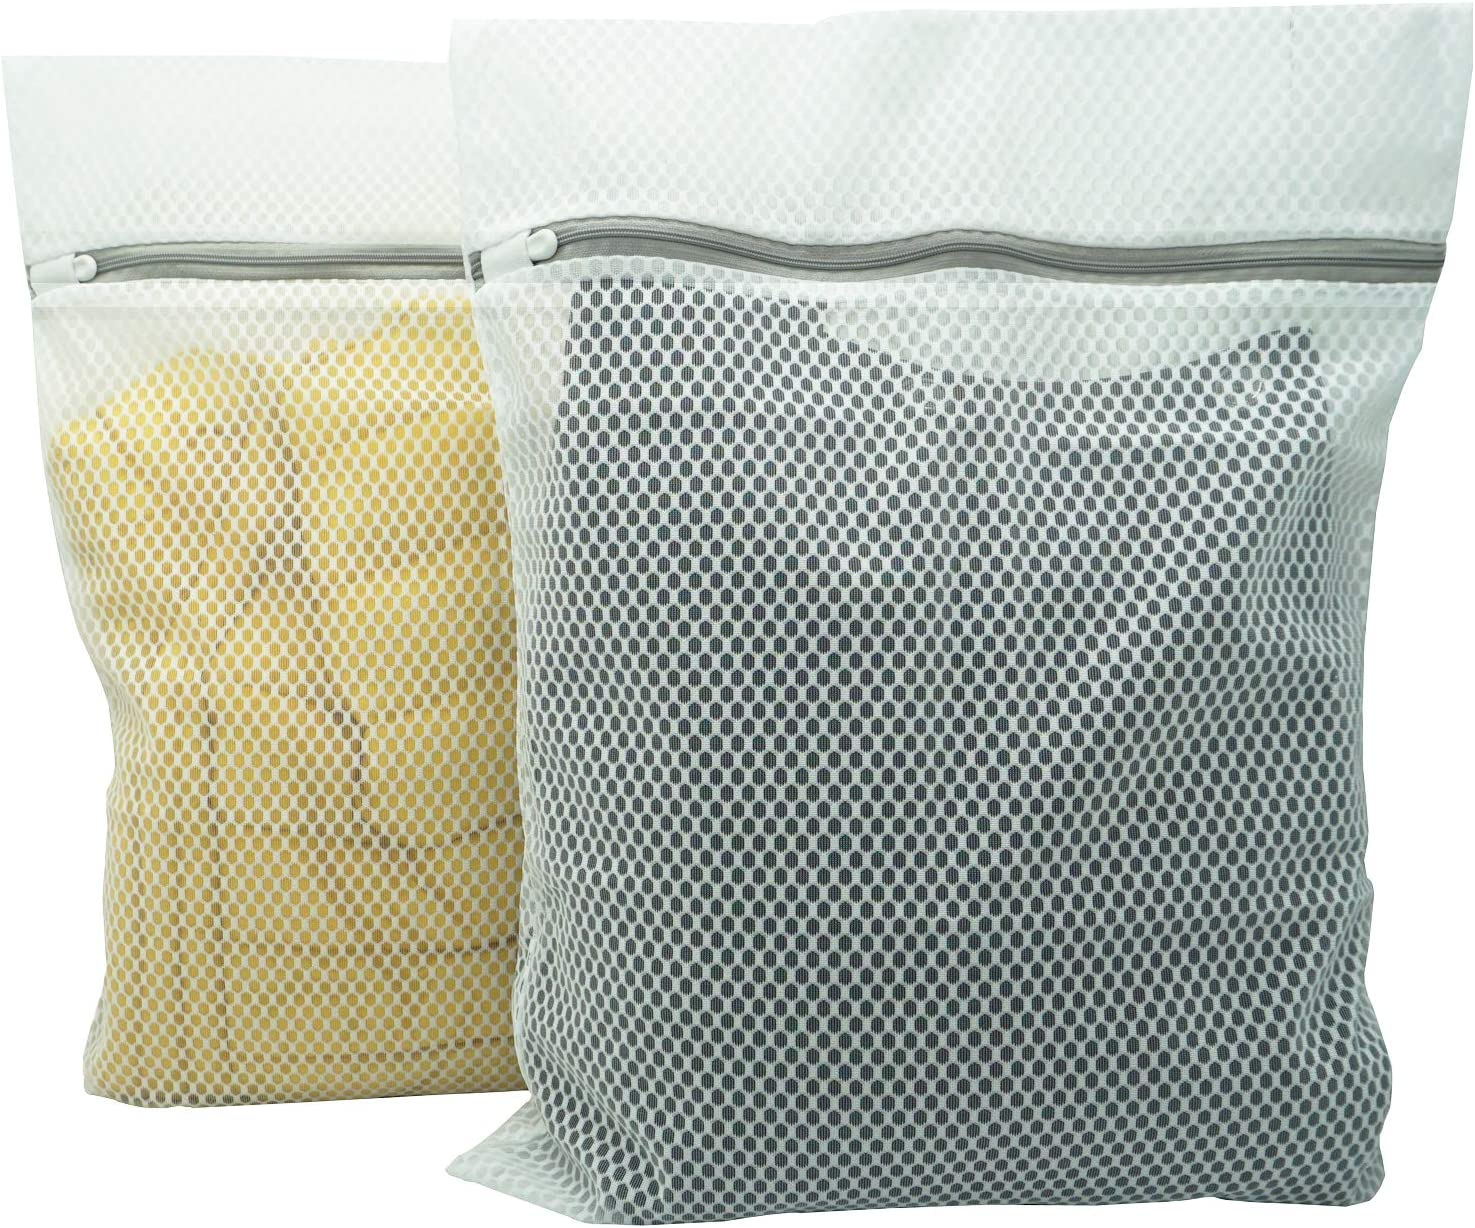 CITIKU Honeycomb Mesh Laundry Bag Pack of 2